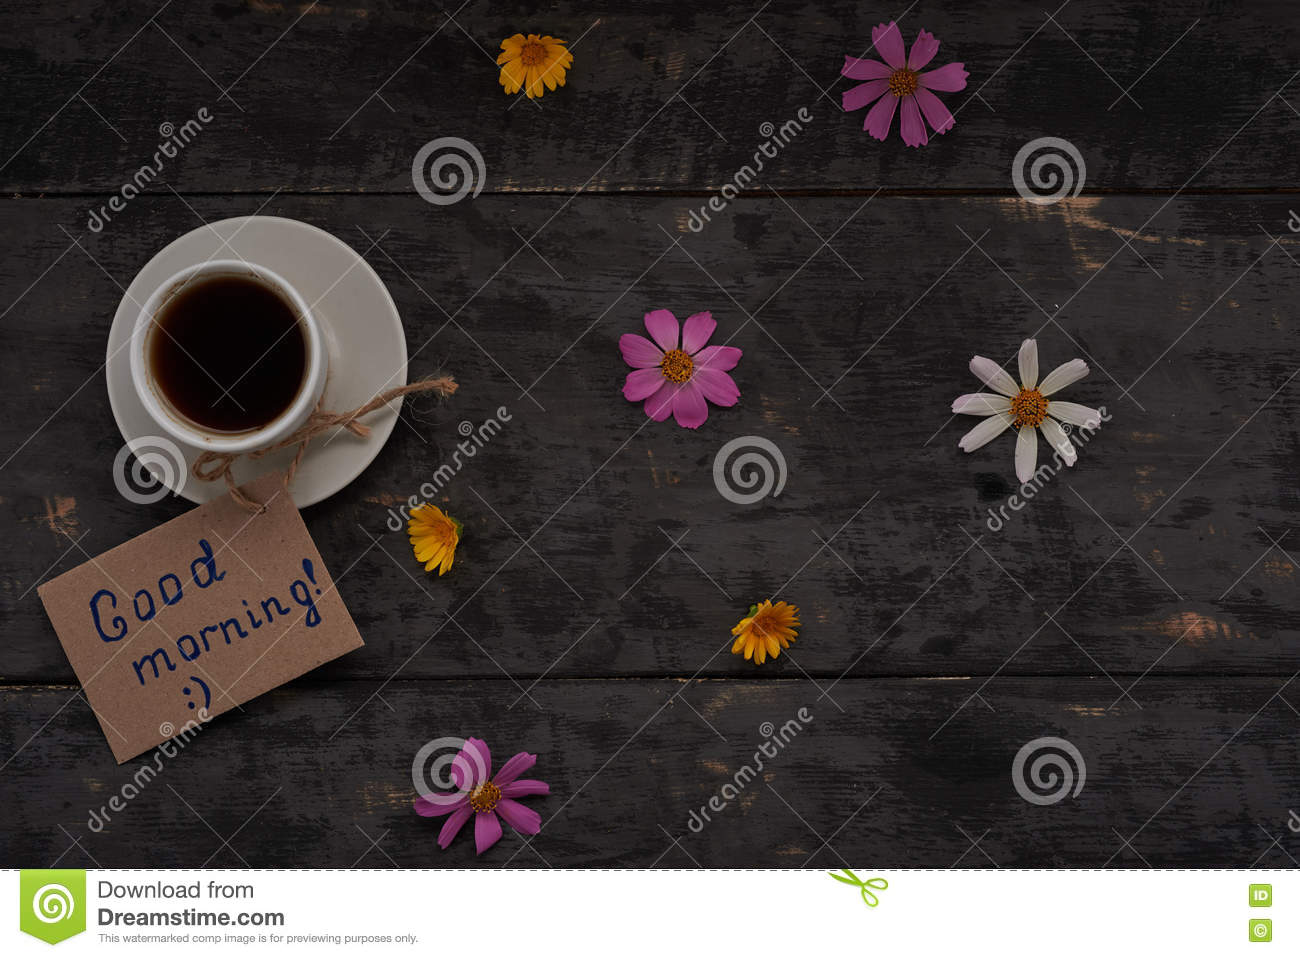 Good Morning Greetings Stock Image Image Of Message 76801903